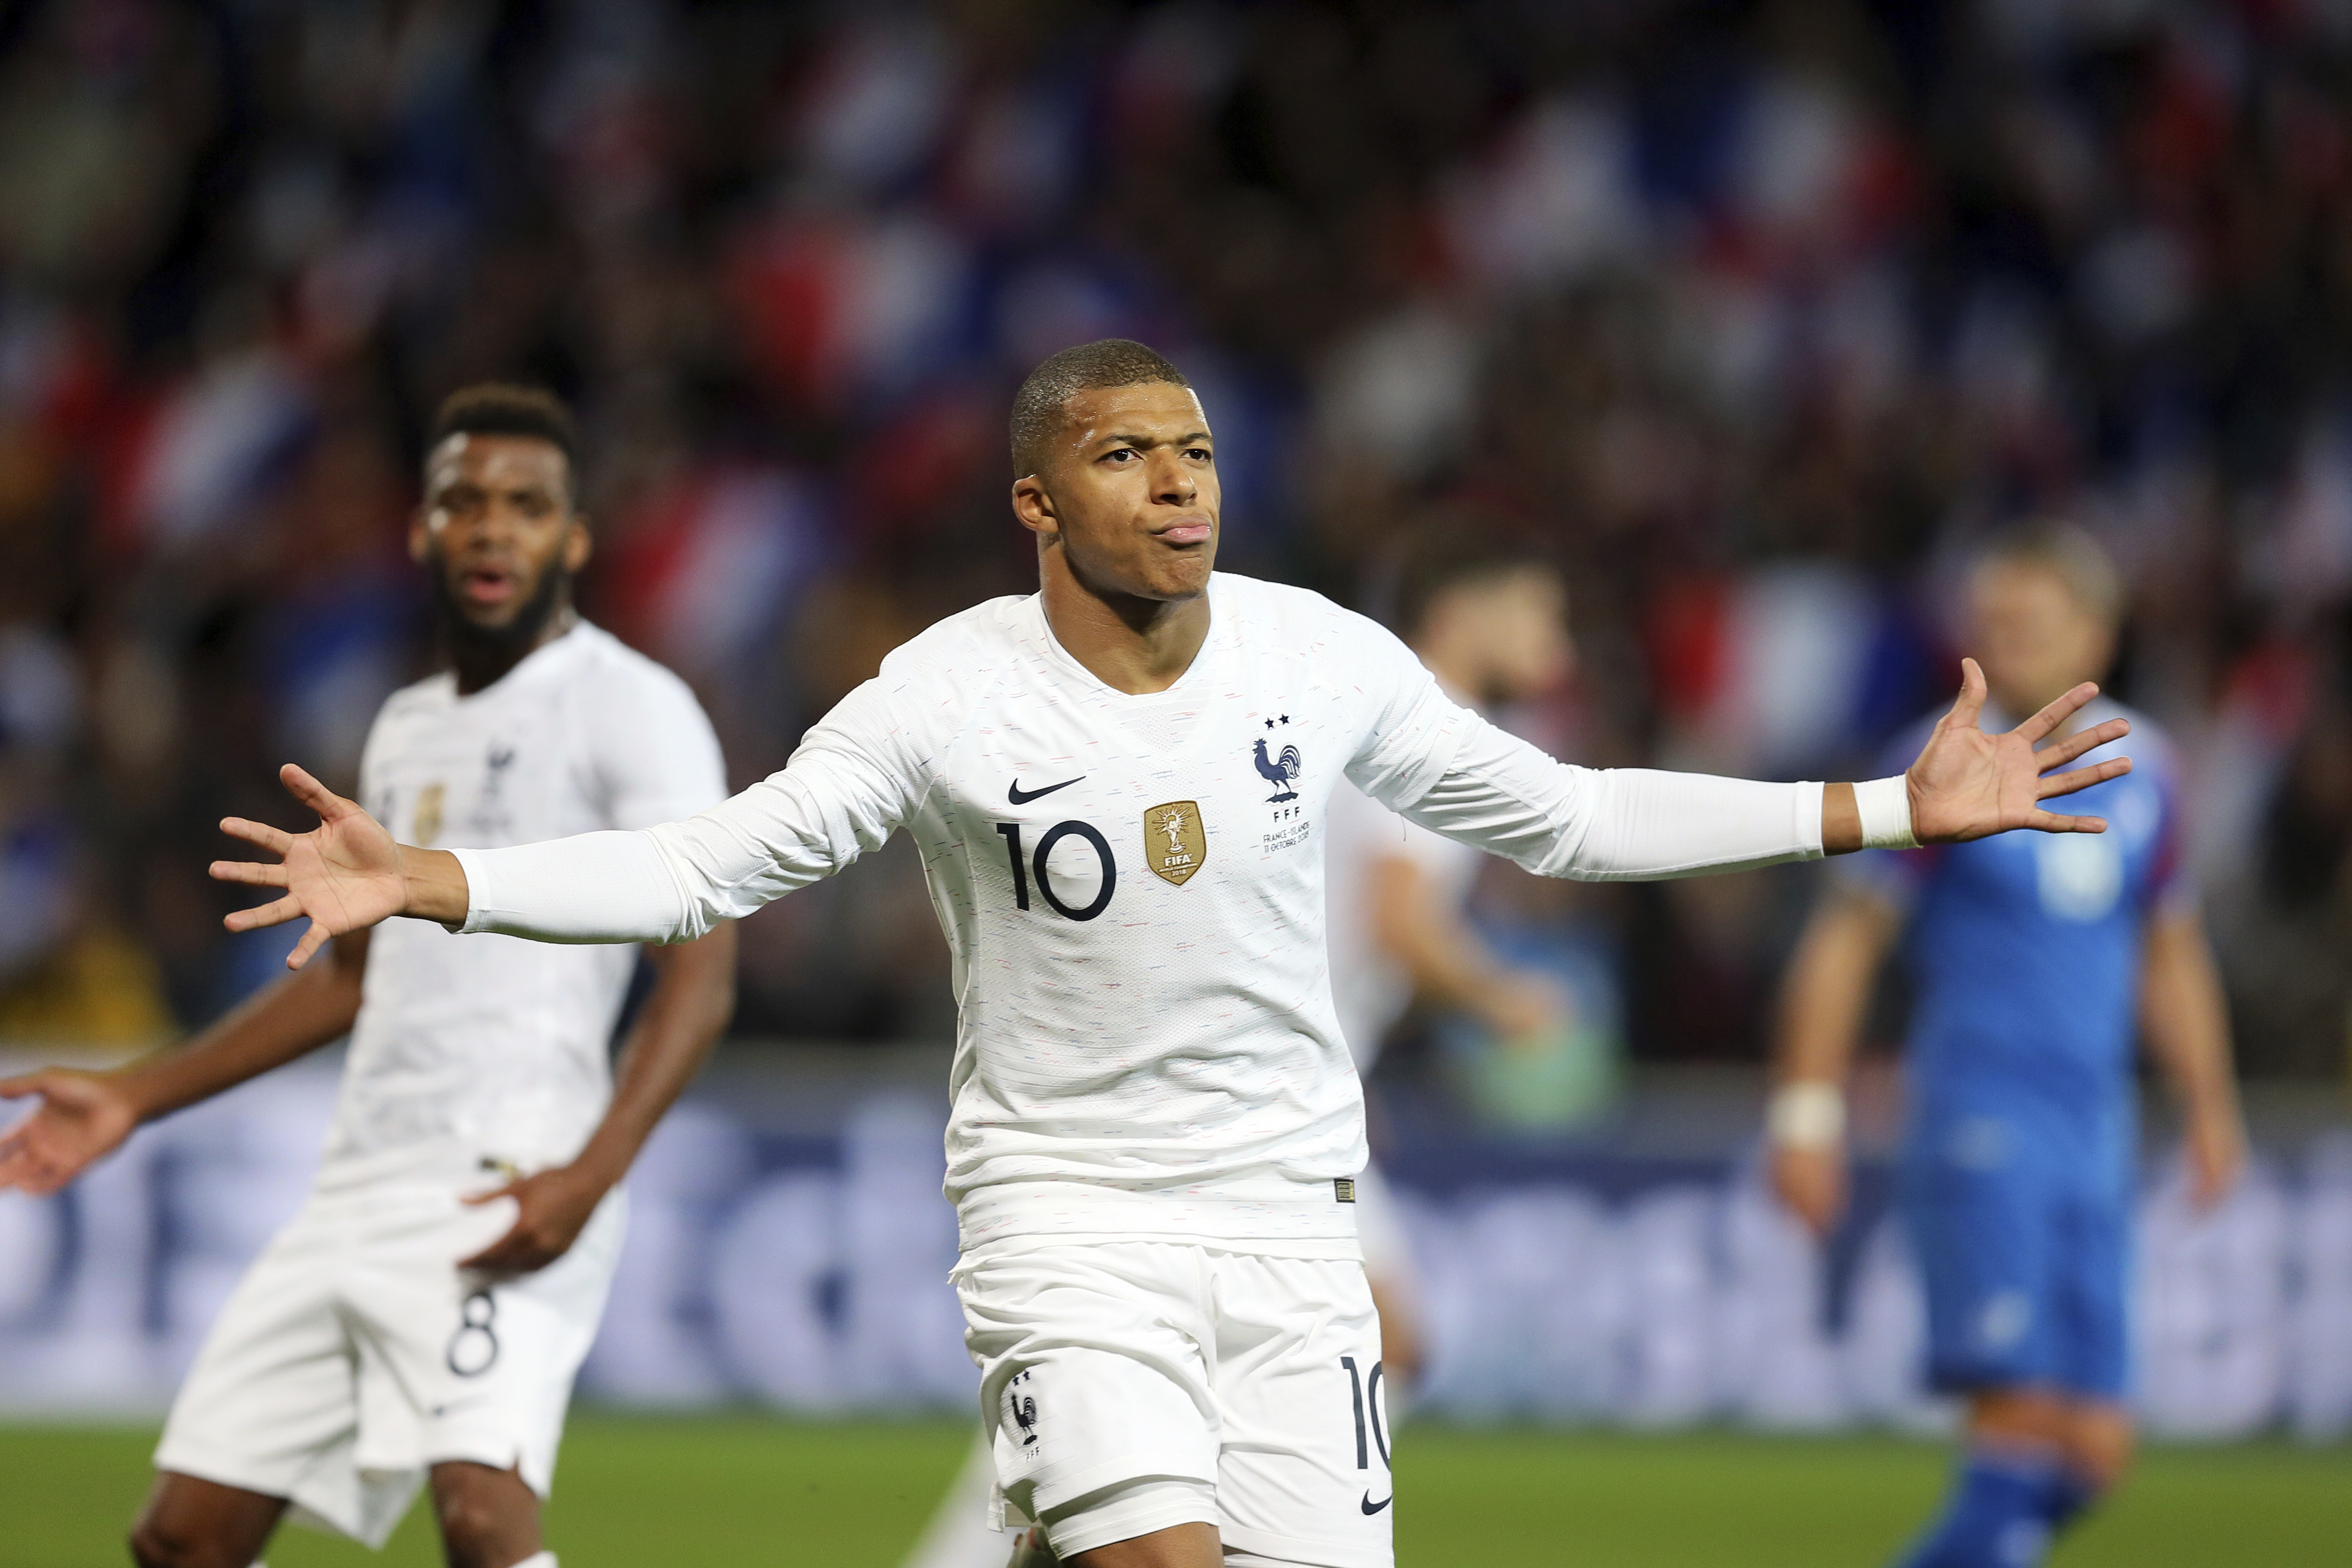 Mbappe celebrates his equaliser against Iceland. Image: PA Images